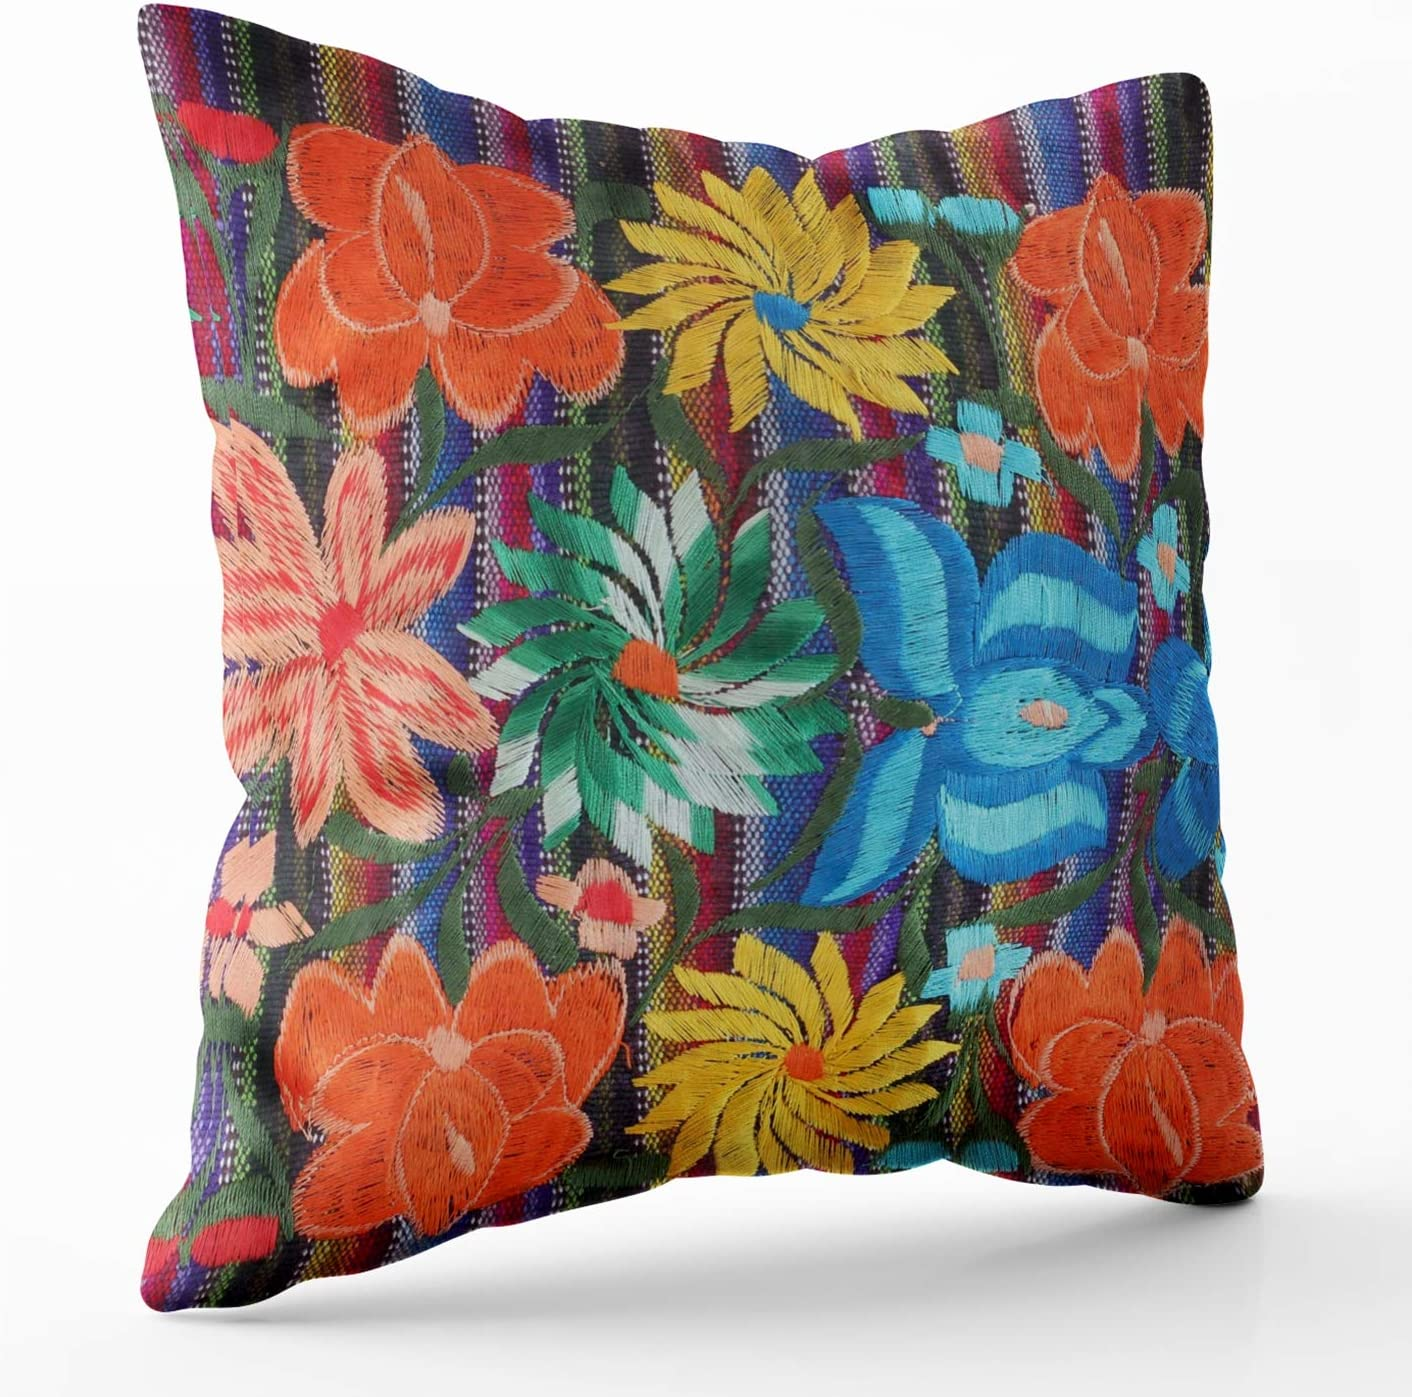 Shorping Zippered Pillow Covers Pillowcases 20X20 Inch mexican embroidery design lumbar Decorative Throw Pillow Cover,Pillow Cases Cushion Cover for Home Sofa Bedding